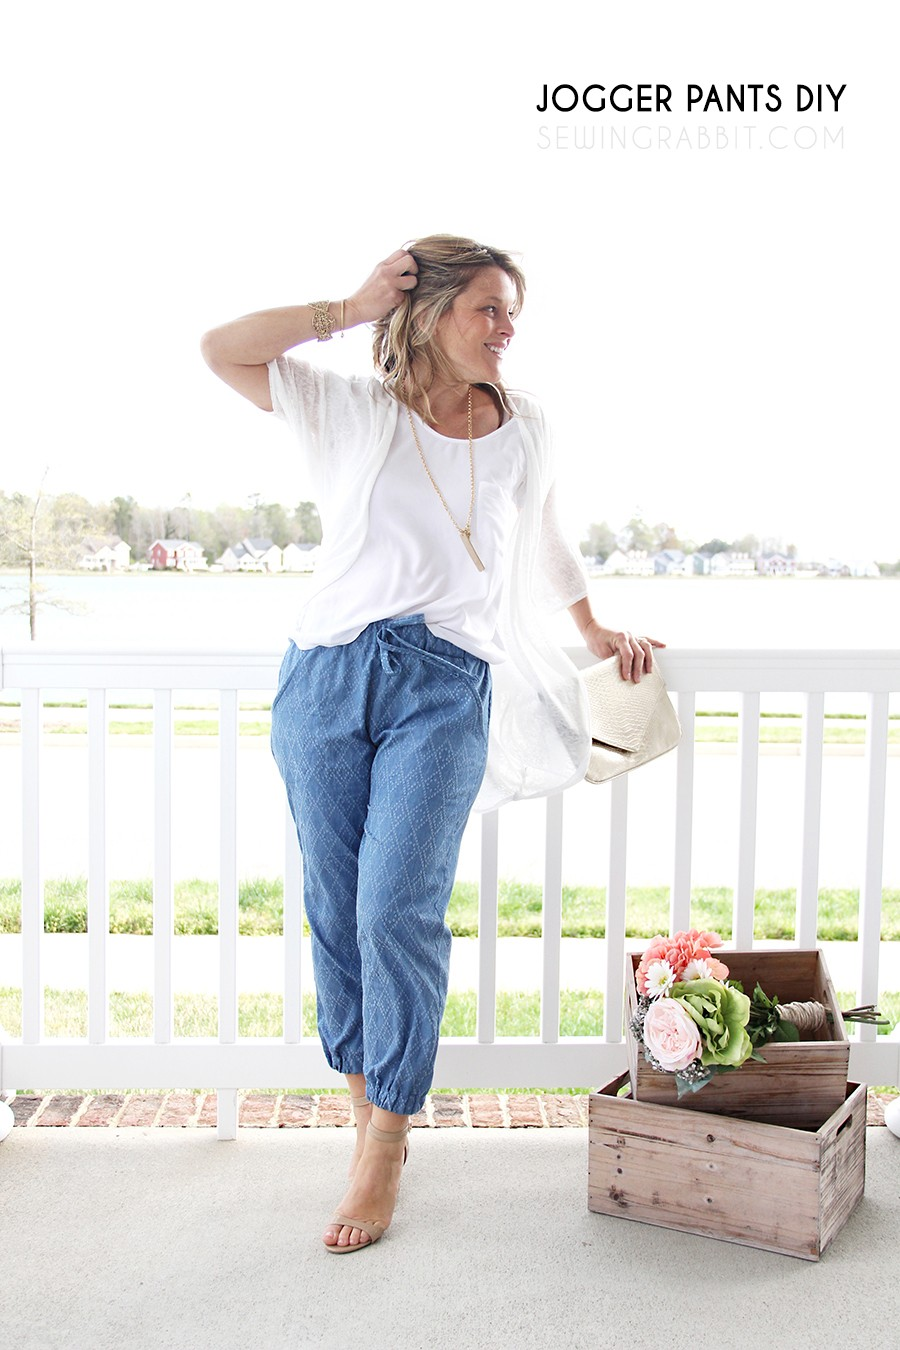 how to make jogger pants, that aren't sweatpants!